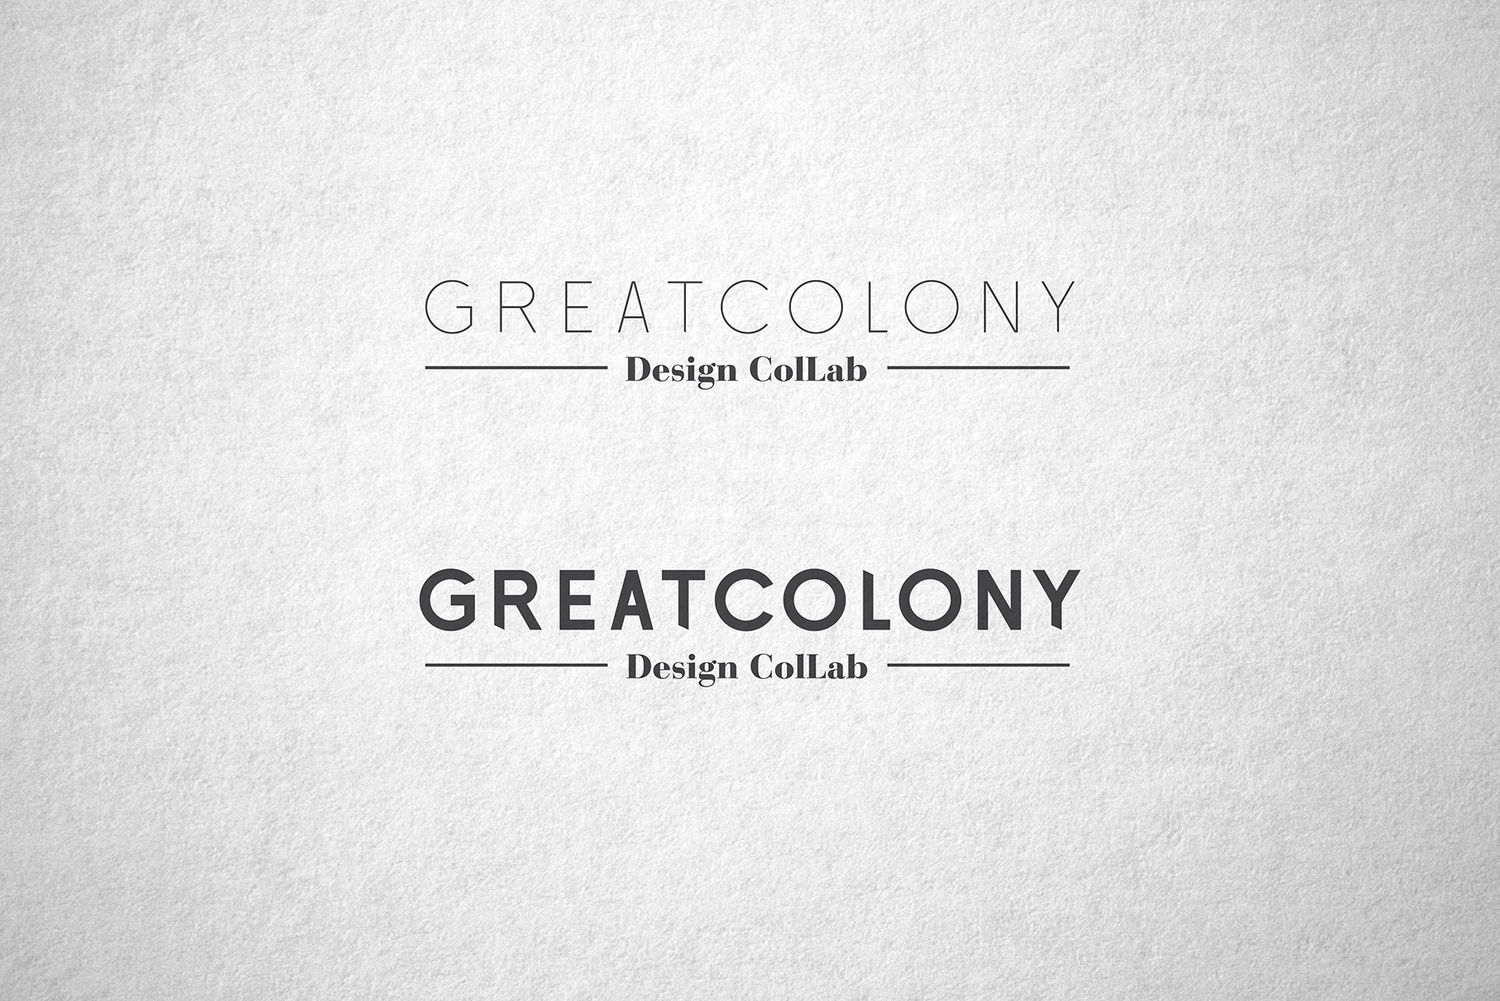 GreatColony / Logofolio - 1 by GreatColonyDesignColLab